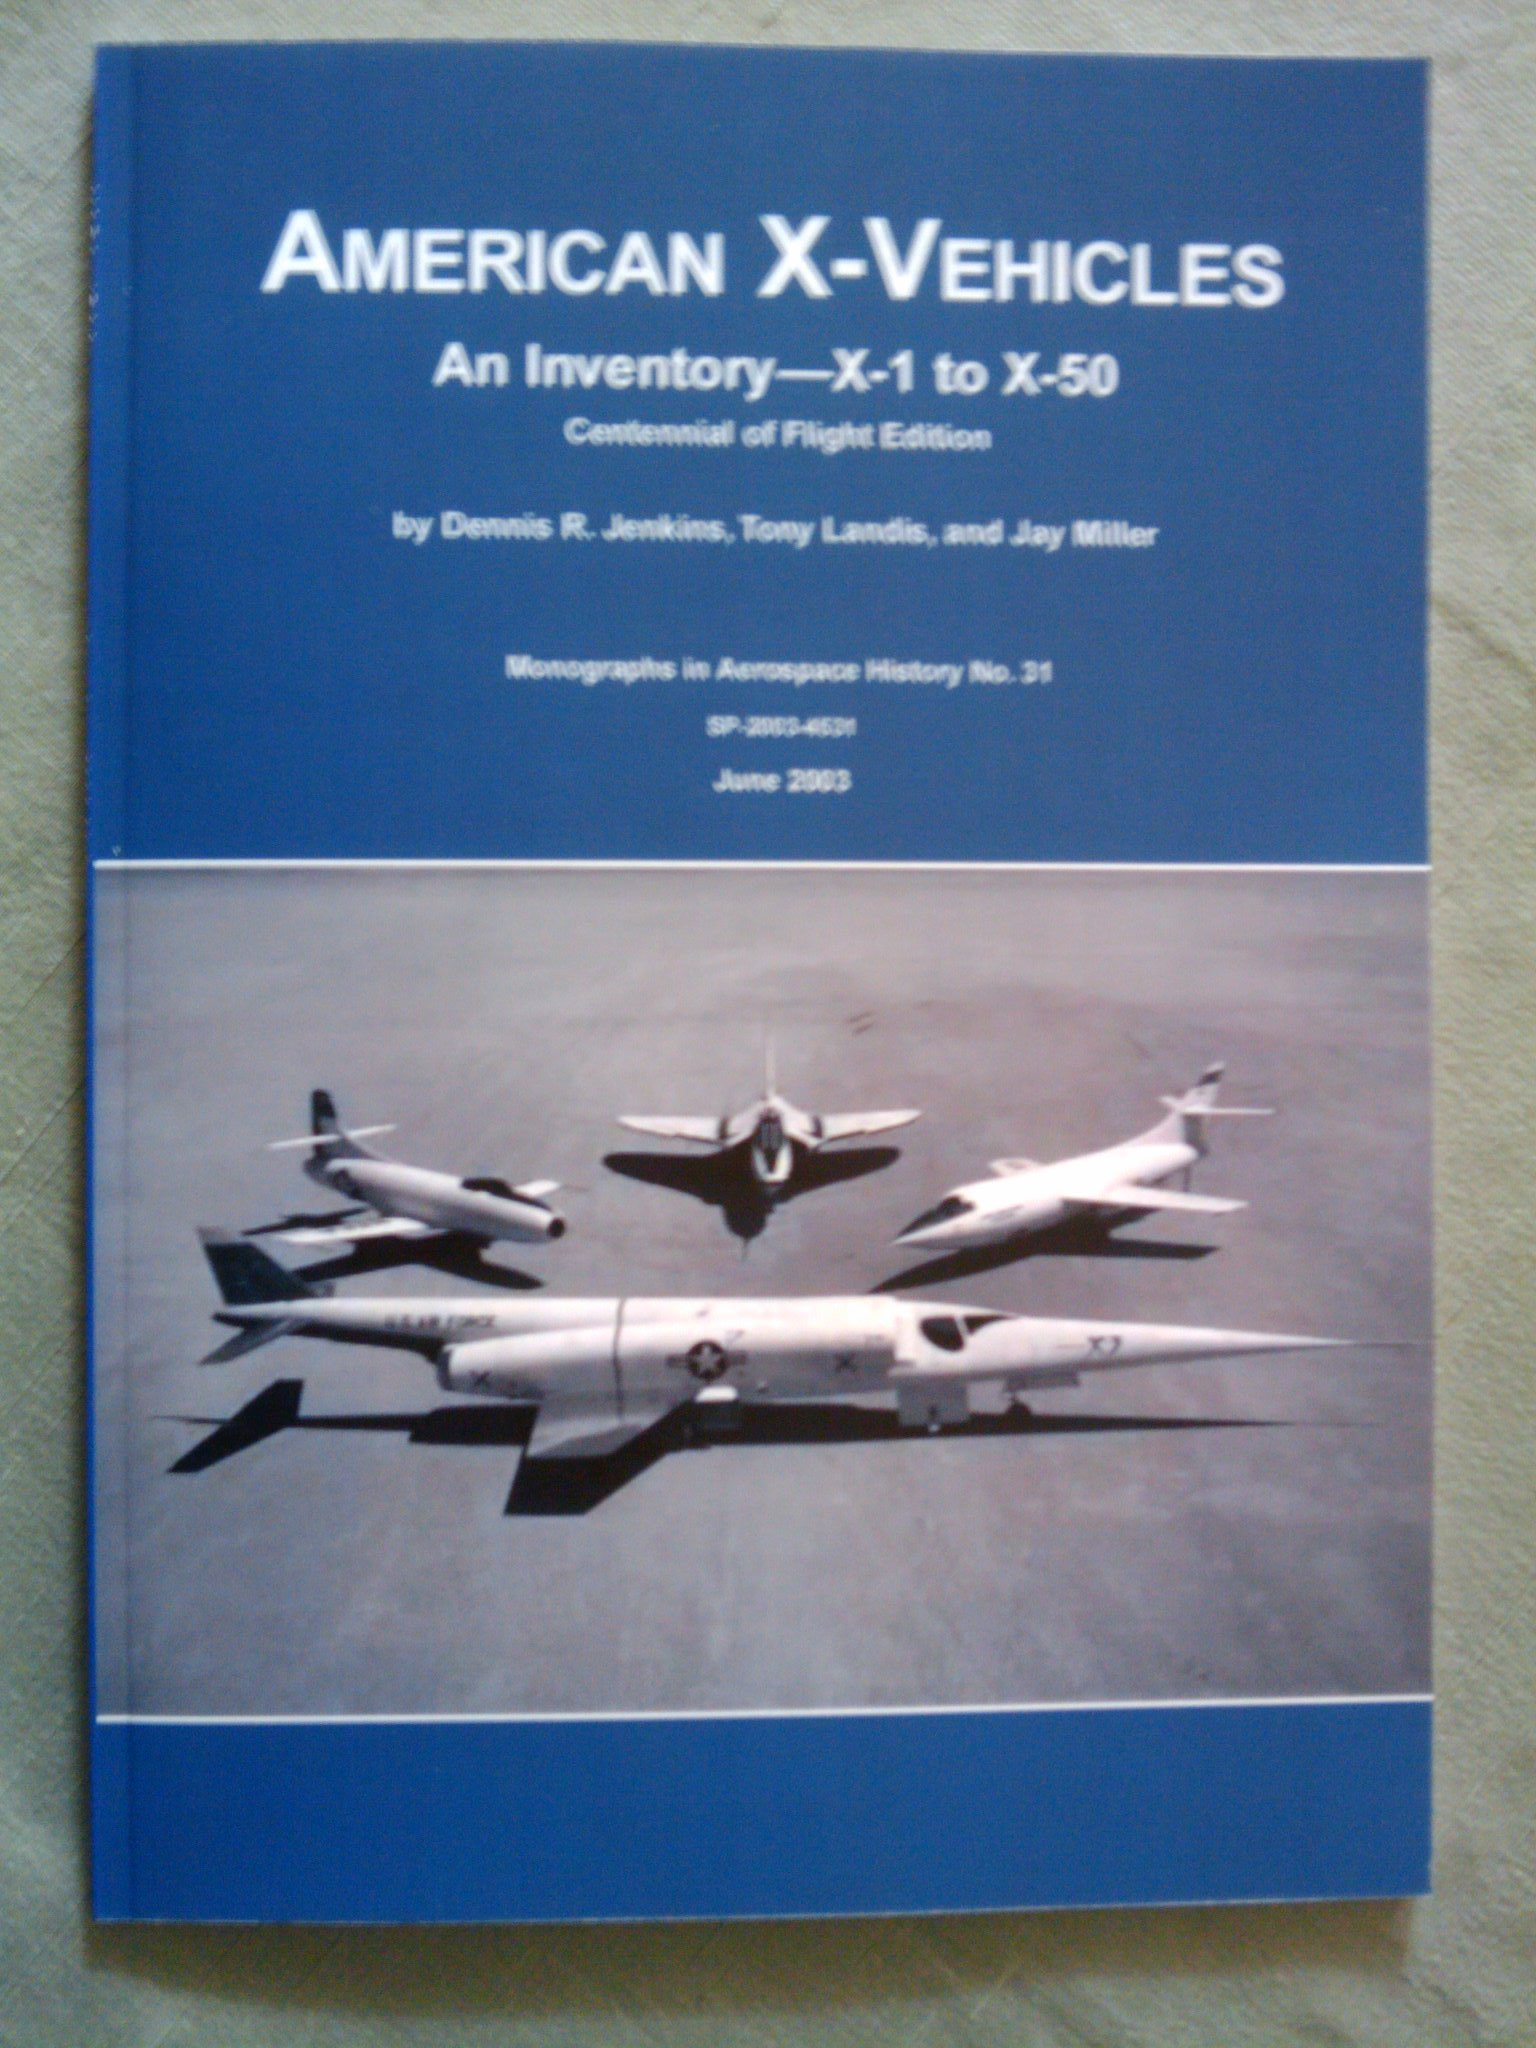 xvehicles-front-cover.jpg